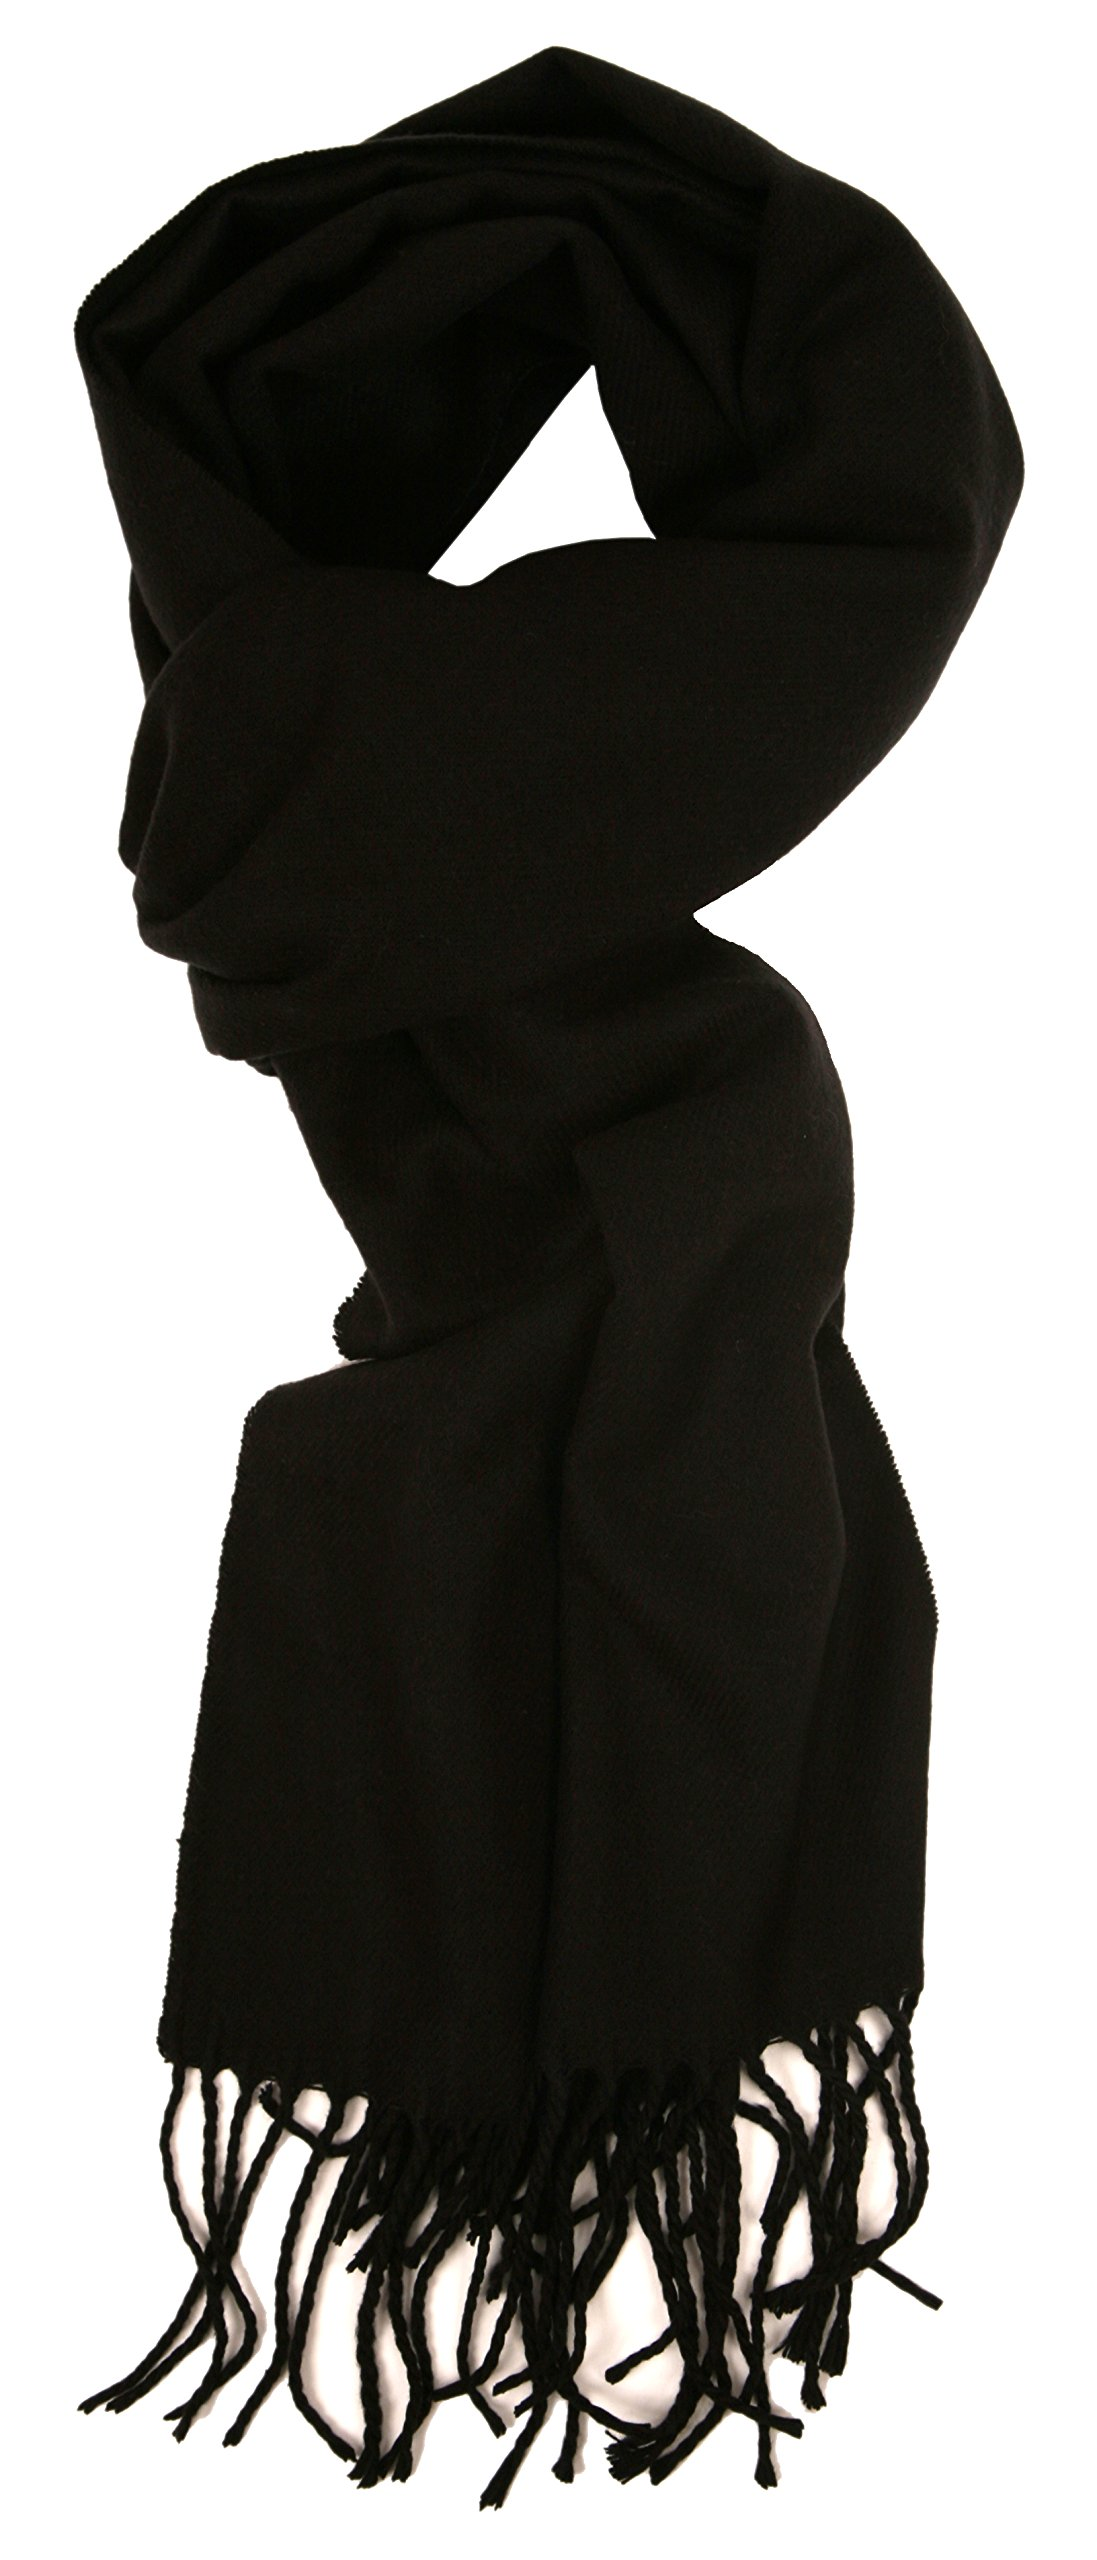 Love Lakeside-Women's Cashmere Feel Winter Solid Color Scarf 0-0 Black